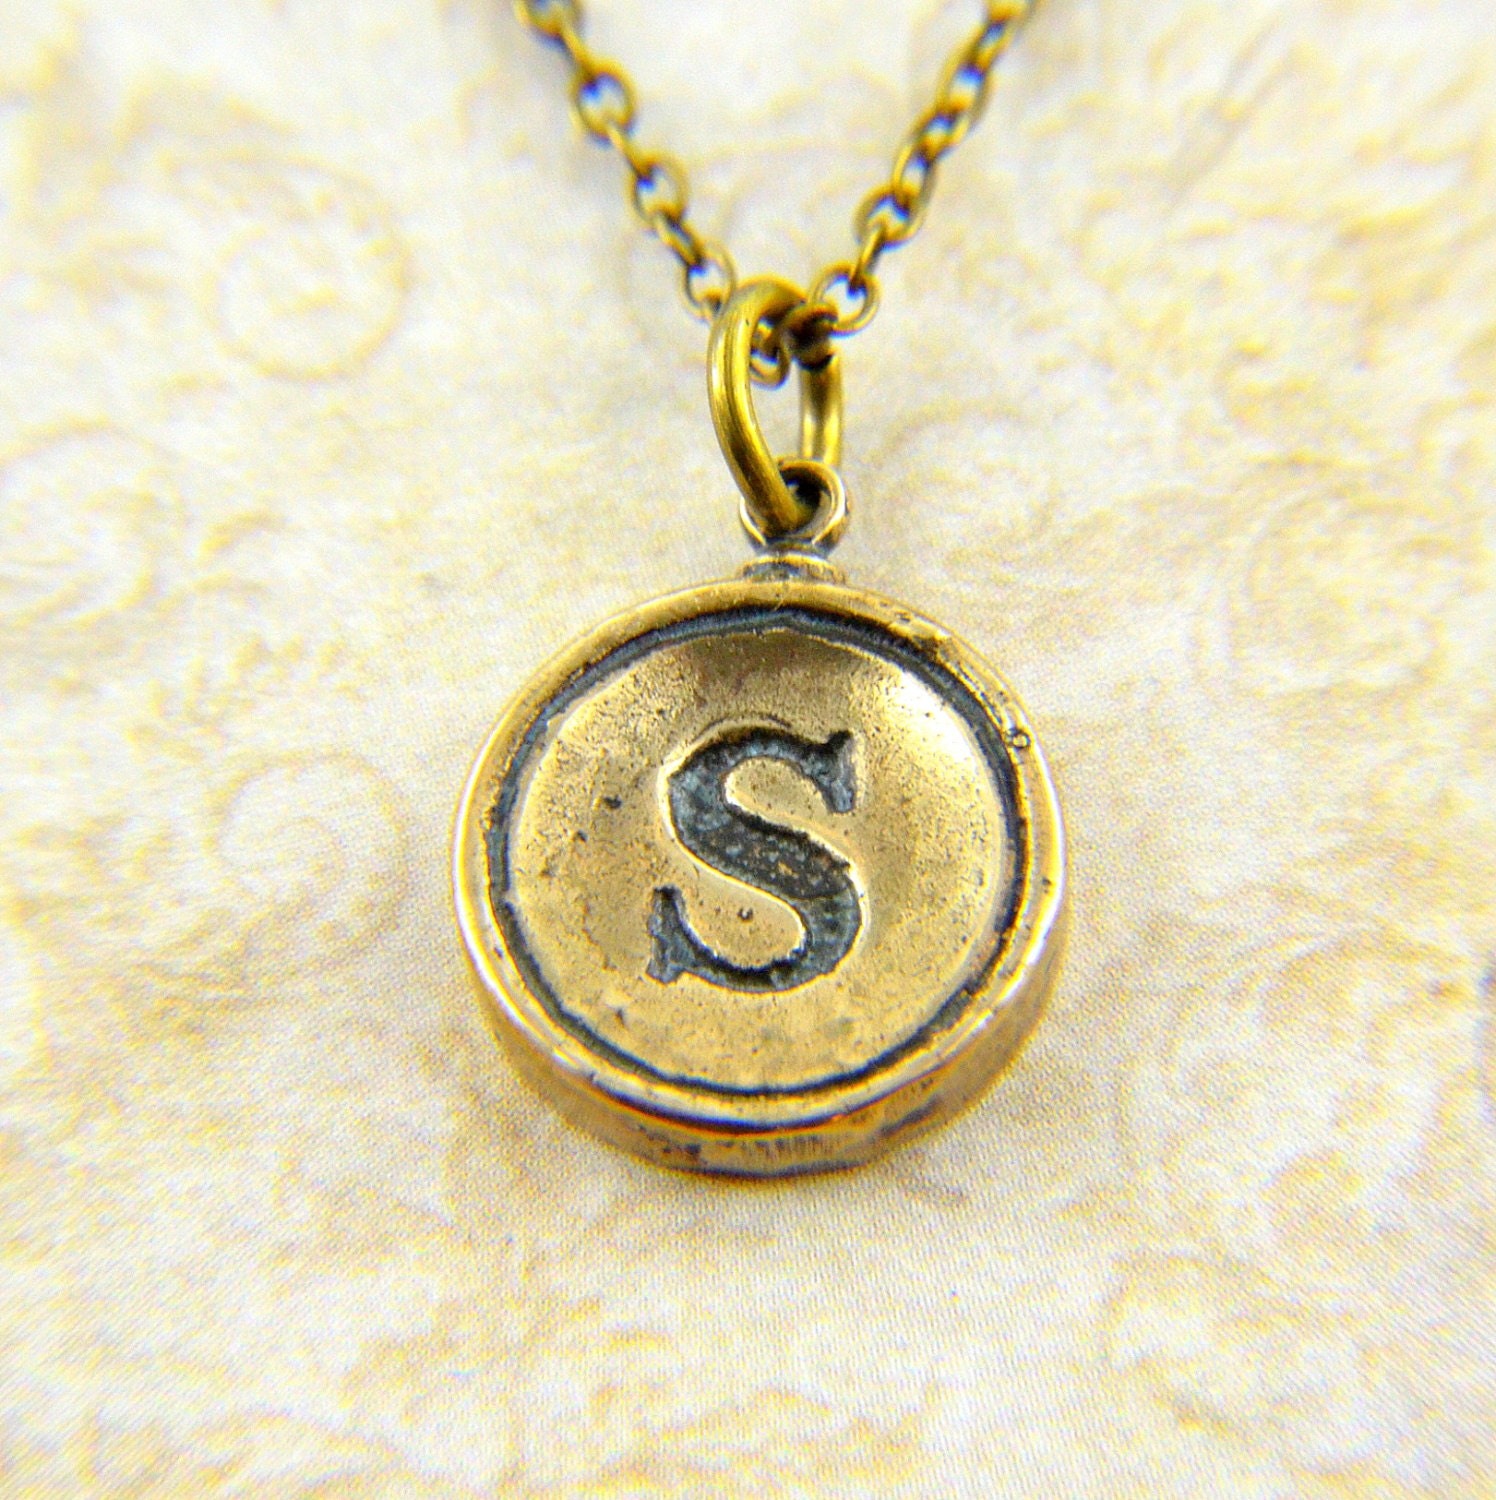 Letter S Typewriter Key Pendant Necklace Charm - Bronze - Other Letters Available steampunk buy now online